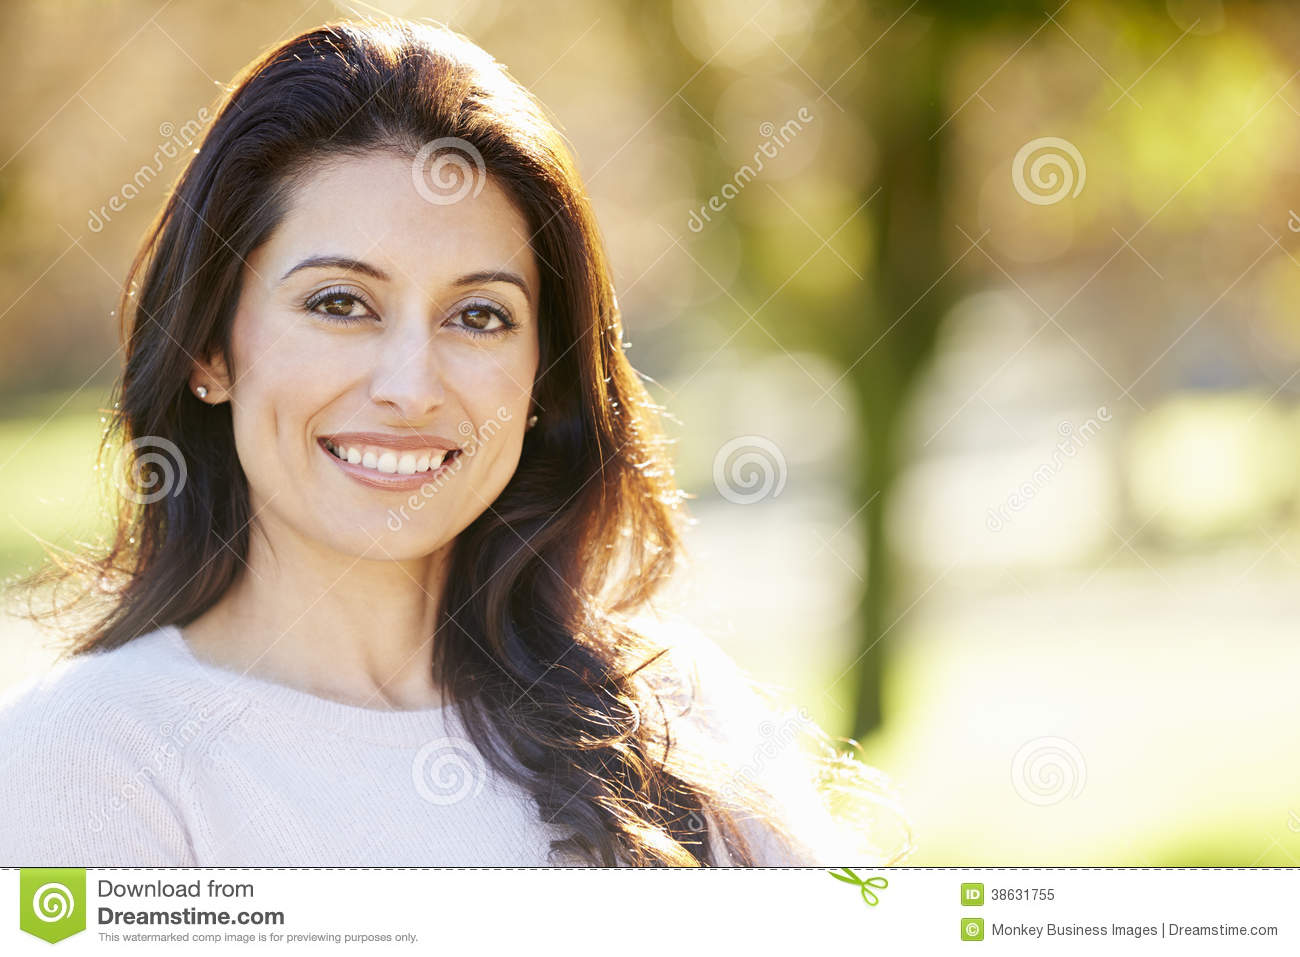 Portrait Of Attractive Hispanic Woman In Countryside